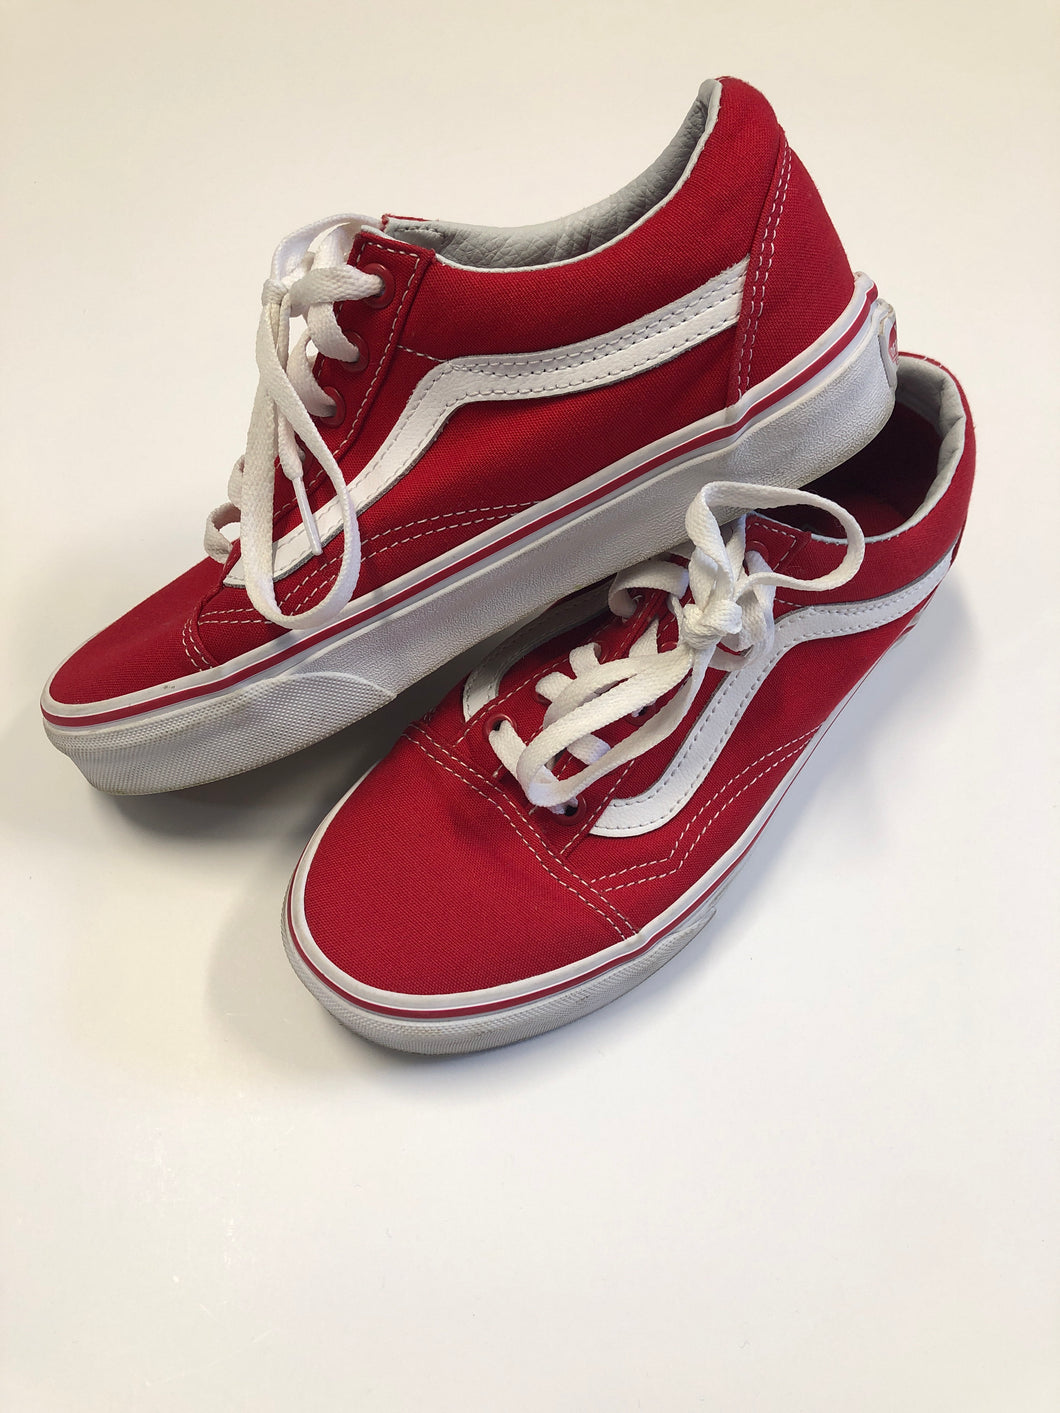 Vans Casual Shoes Womens 7